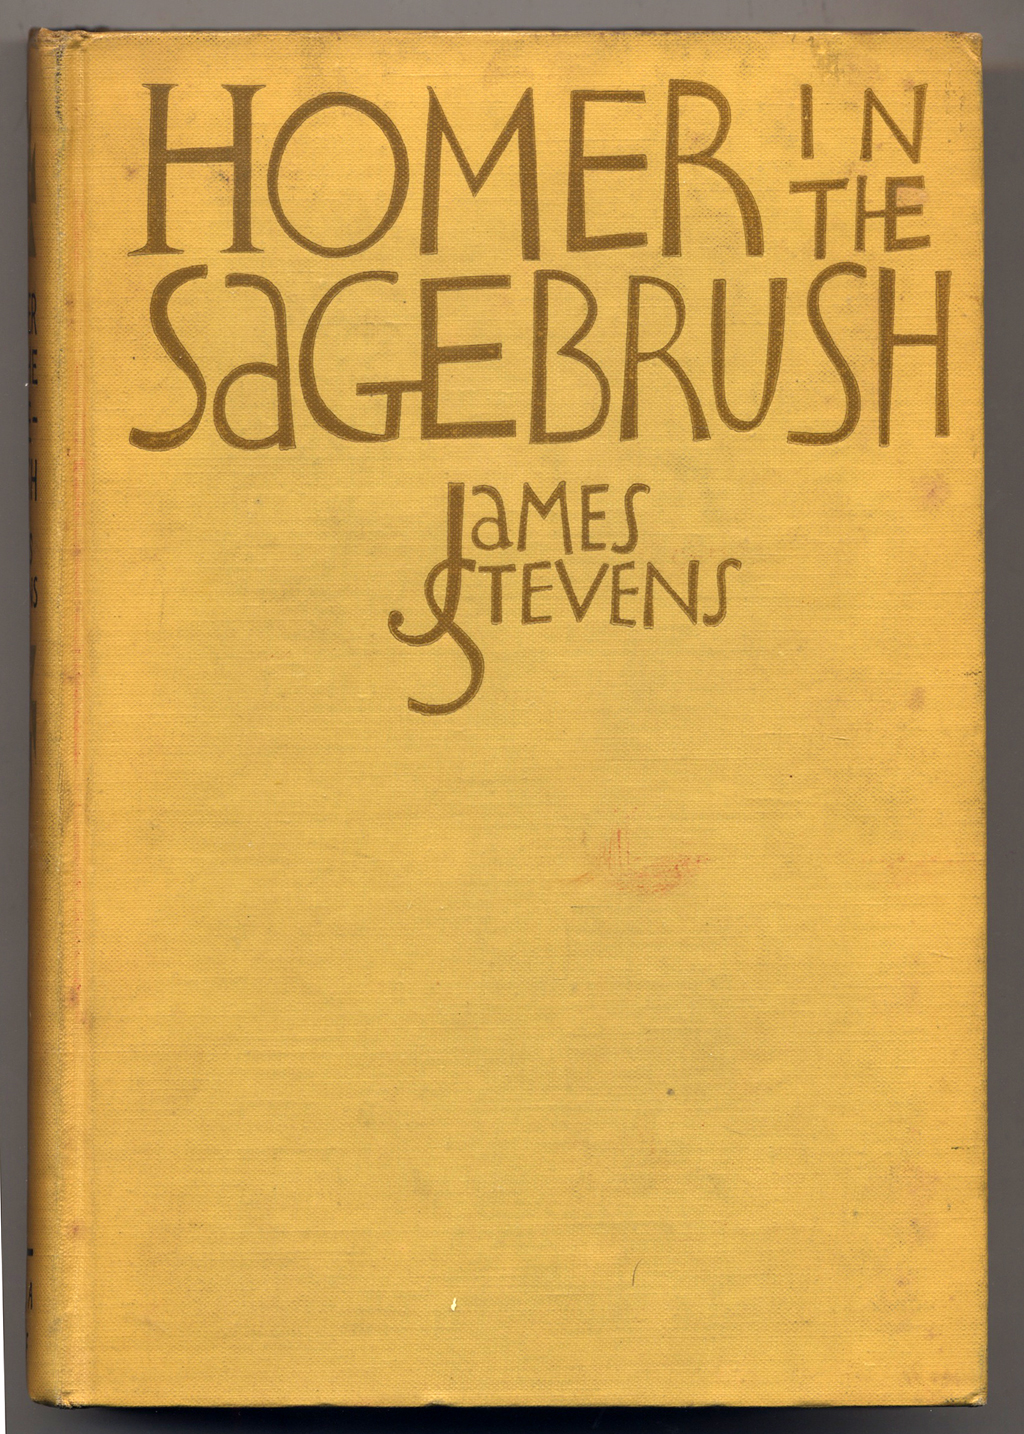 Homer in the Sagebrush by James Stevens (New York: Alfred A. Knopf, 1929). Binding lettering by W.A. Dwiggins.